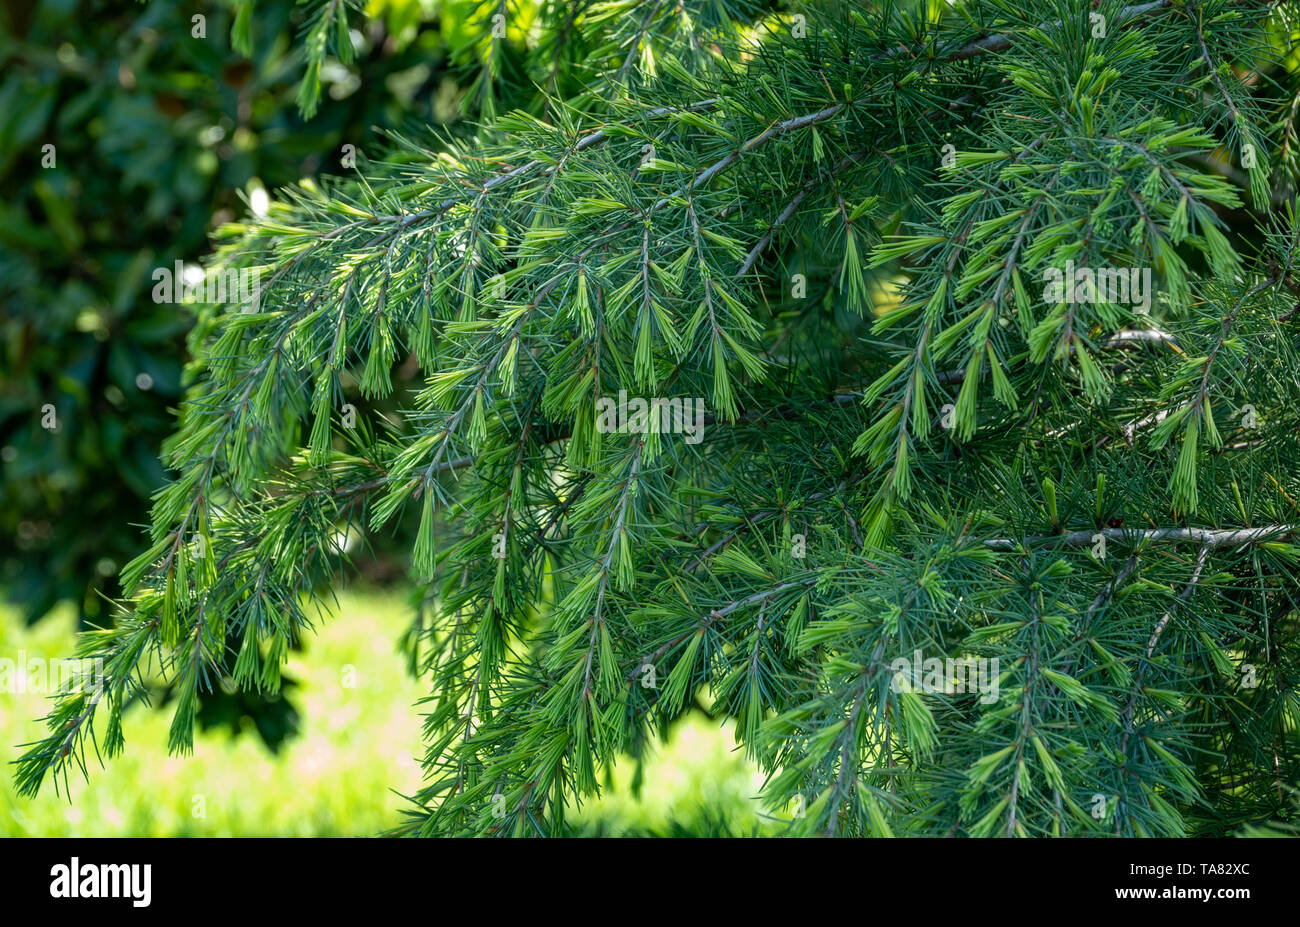 Fresh young fir branches in spring. Background image. - Stock Image